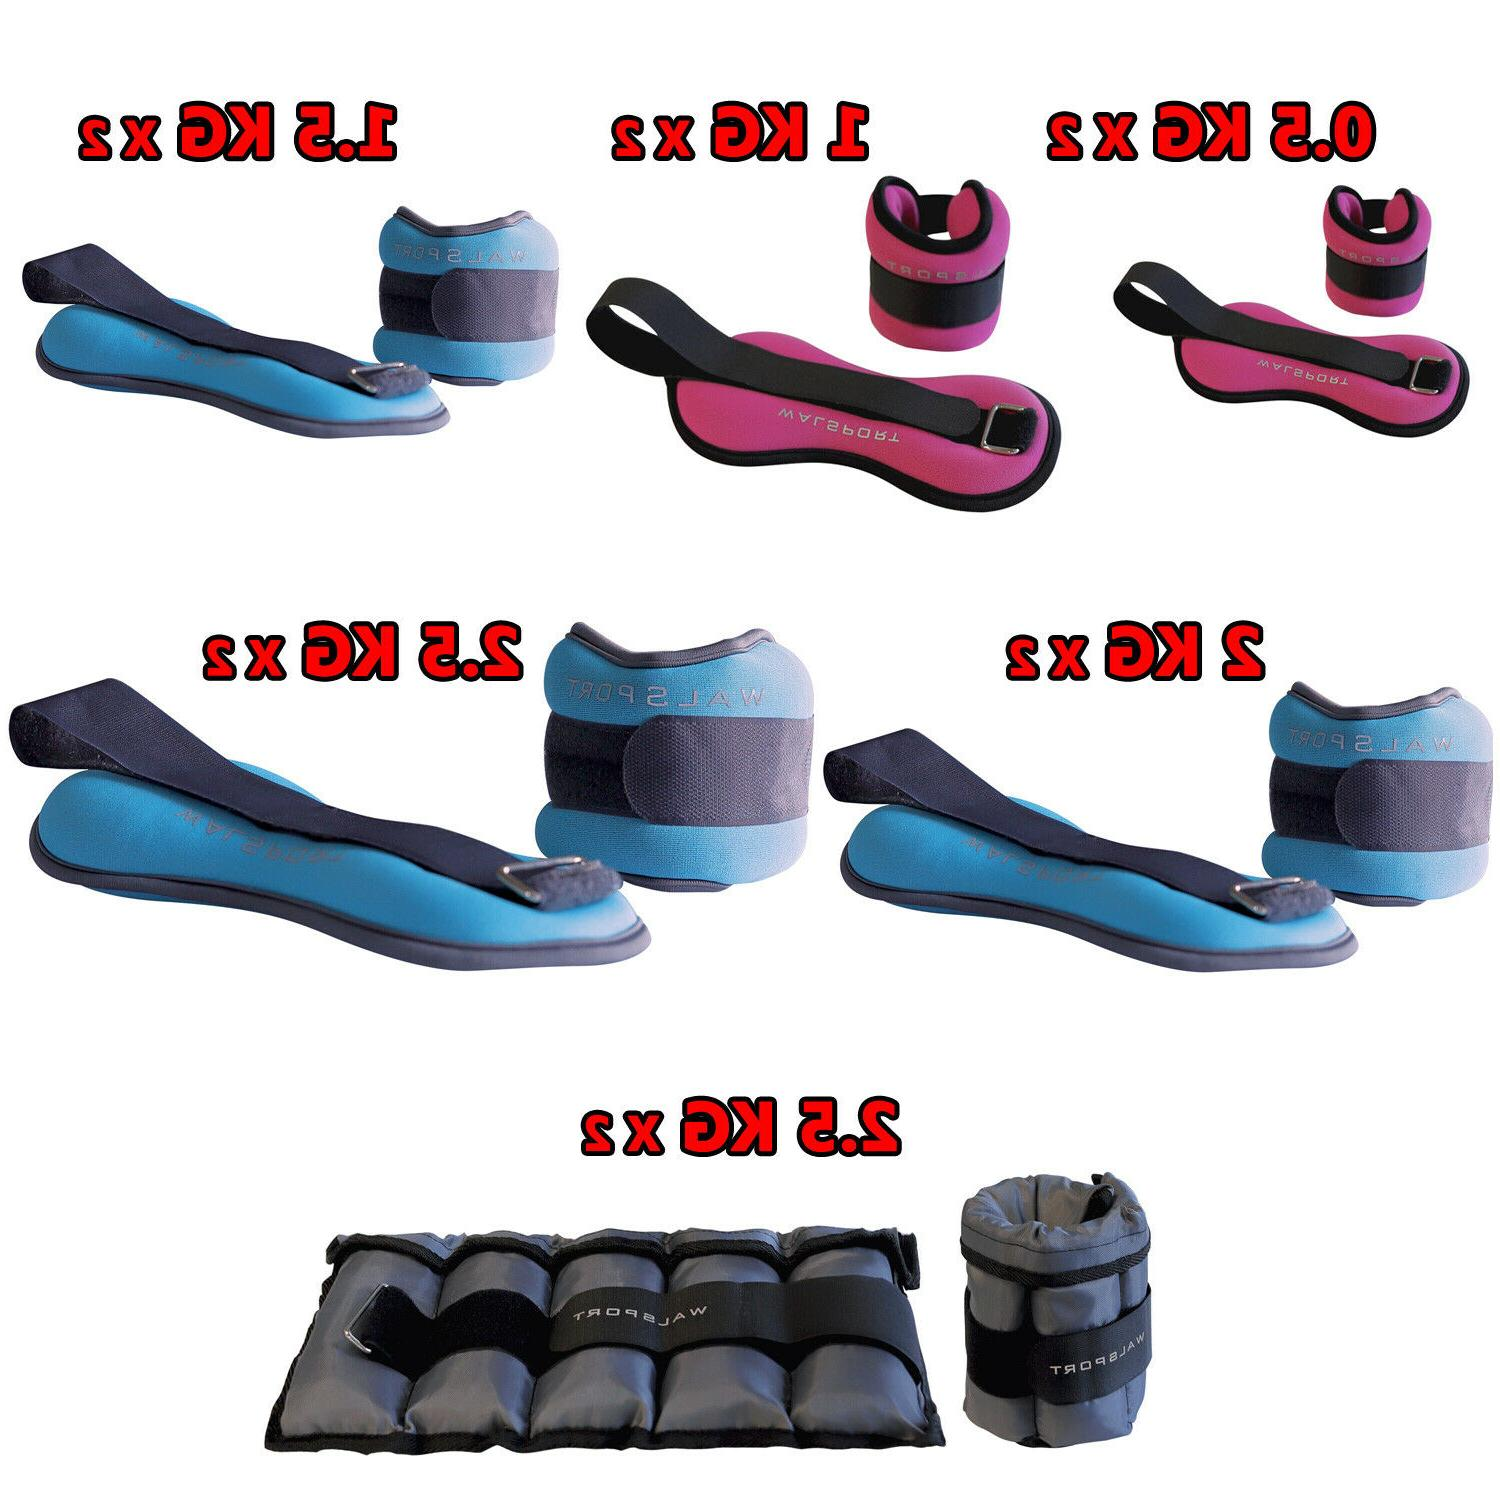 1 Ankle Wrist Weights Training Fitness Running Exercise